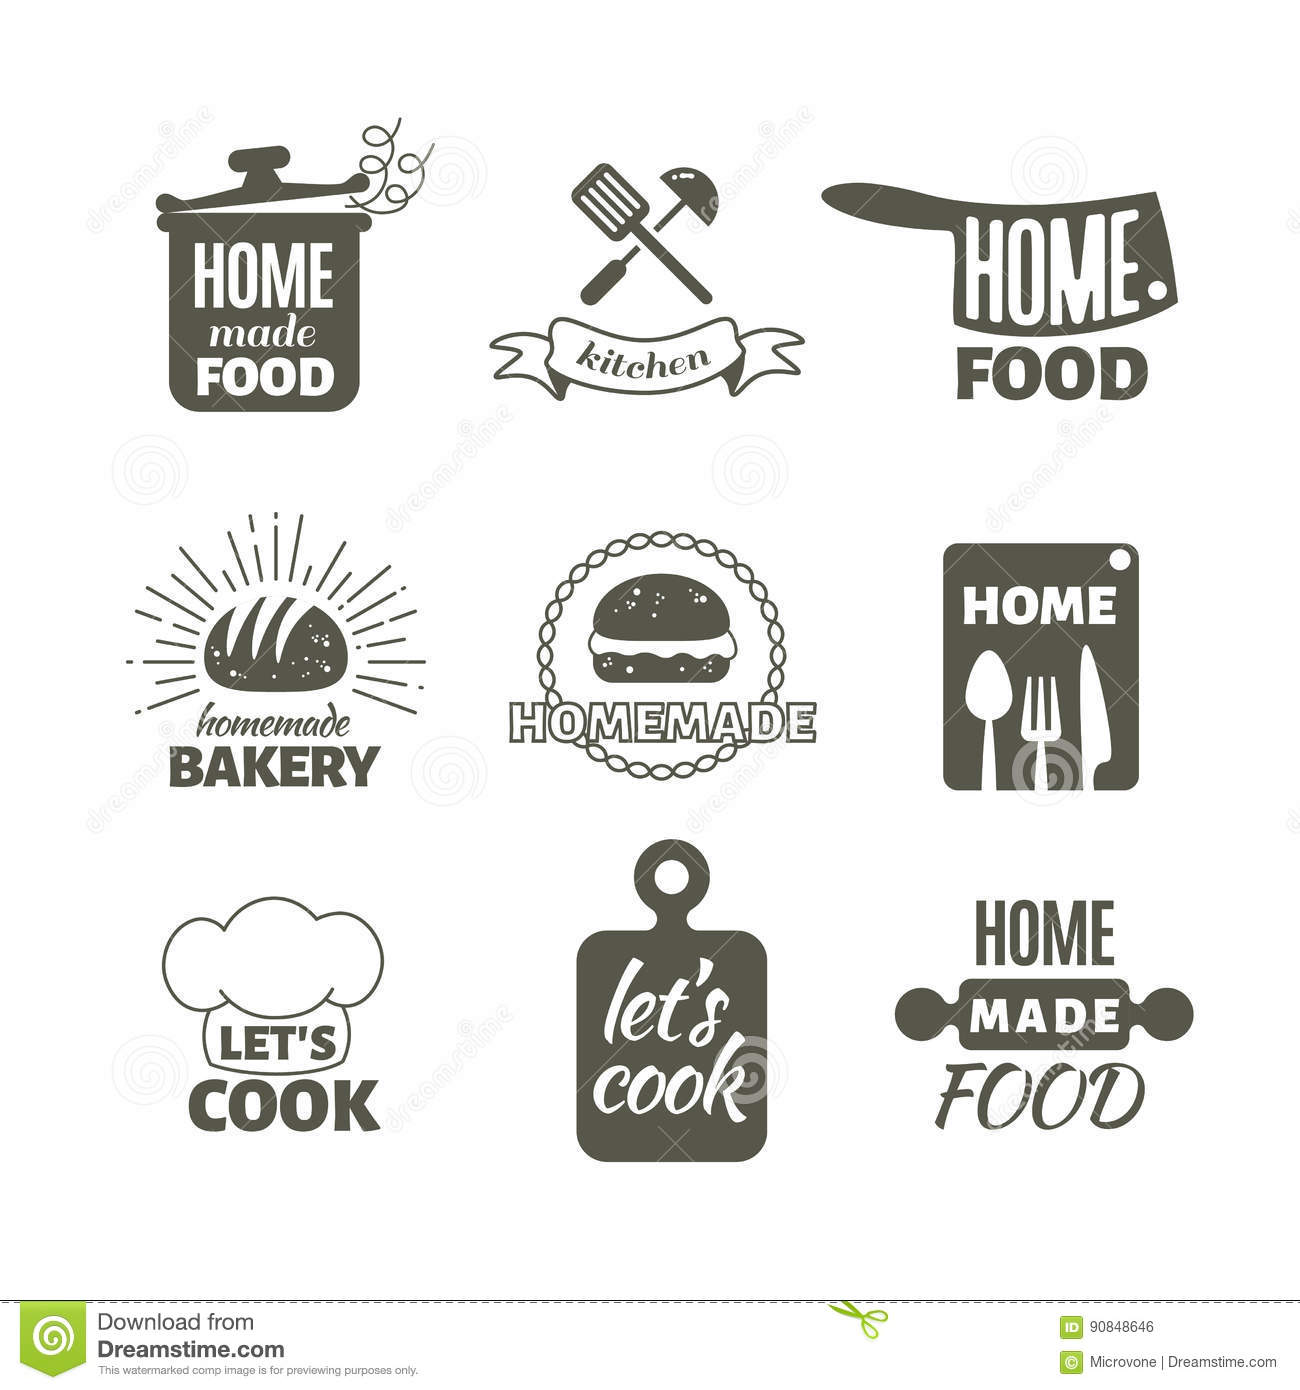 Home kitchen logo collective cooking logos kitchen logo for Kitchen decoration logo